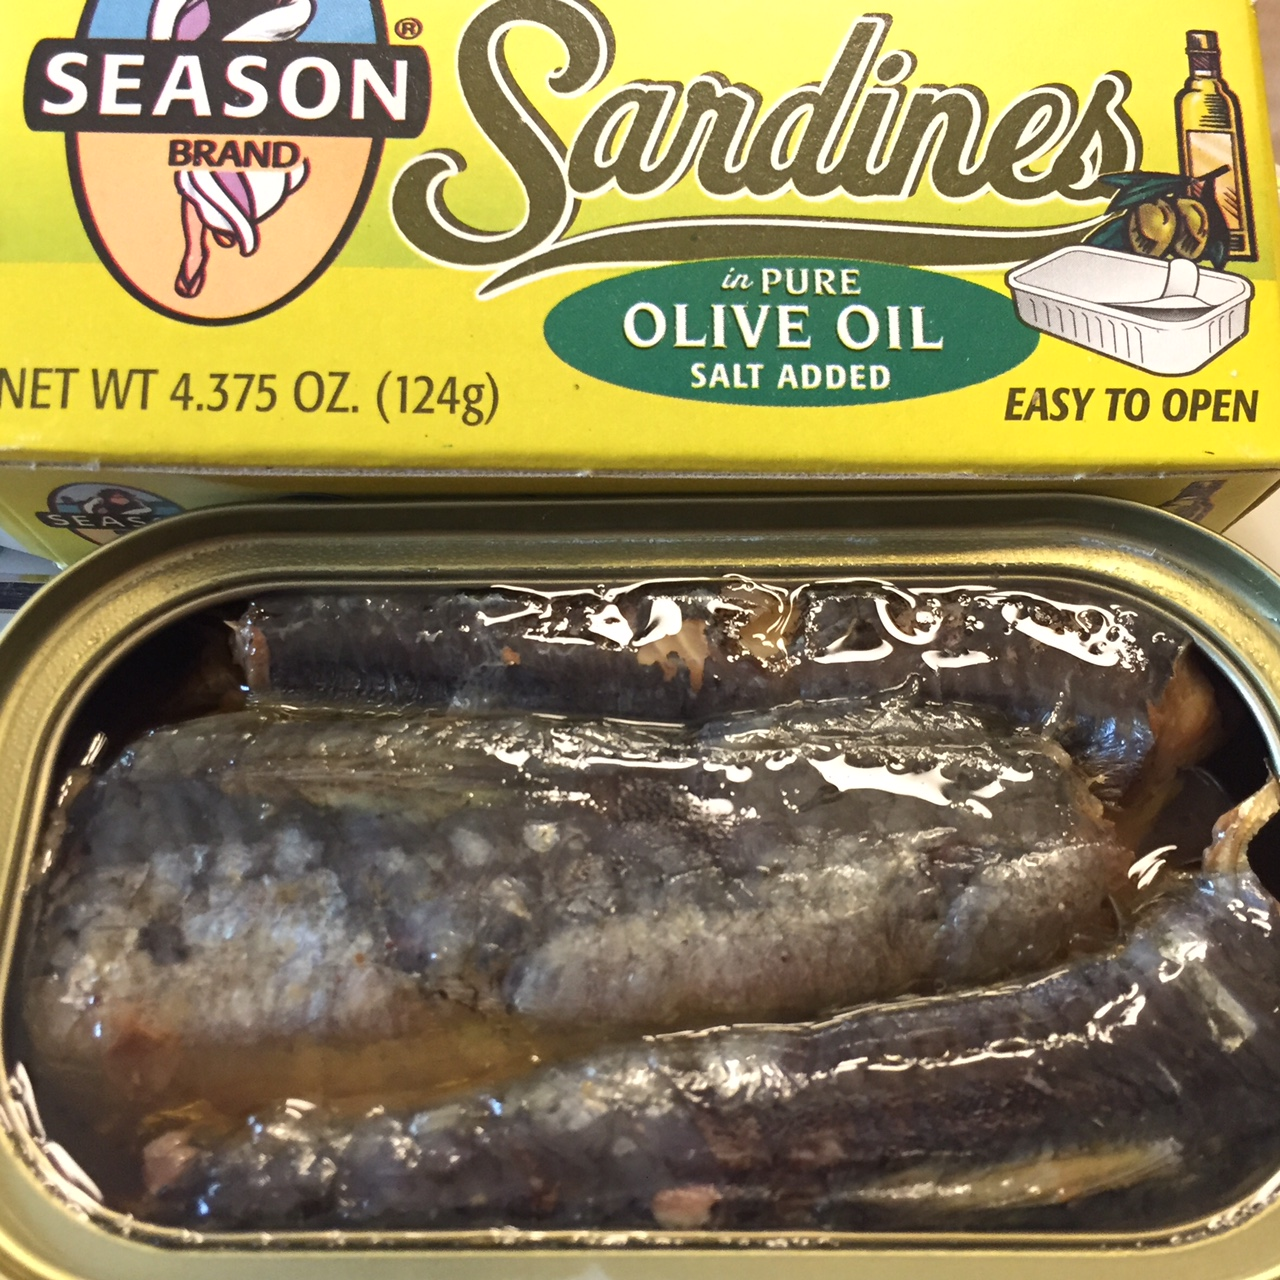 Canned Sardines Get A Bad Rap